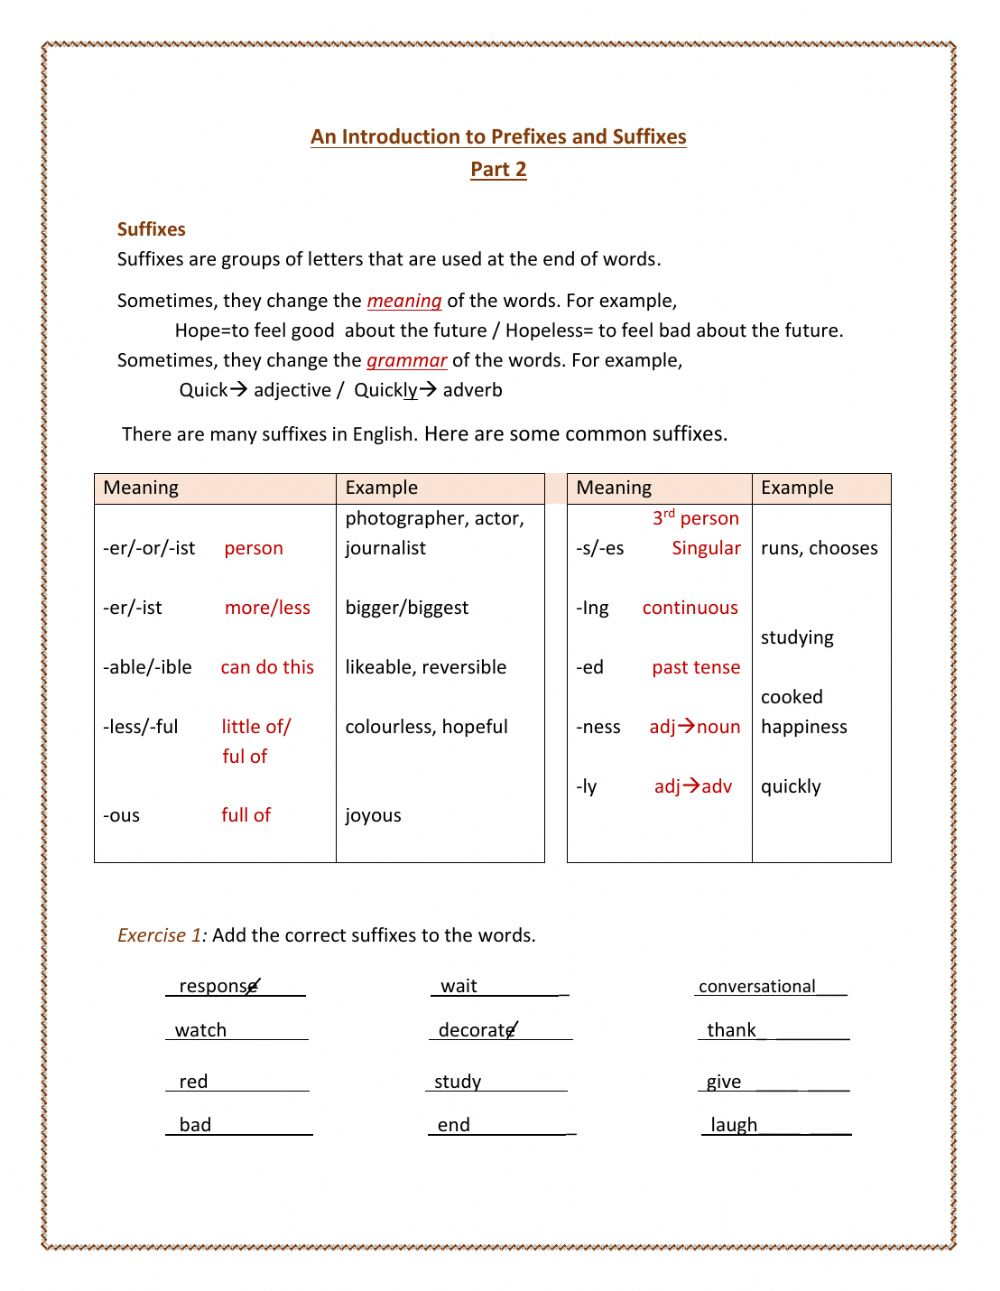 medium resolution of Introduction to Prefixes and Suffixes 2 worksheet